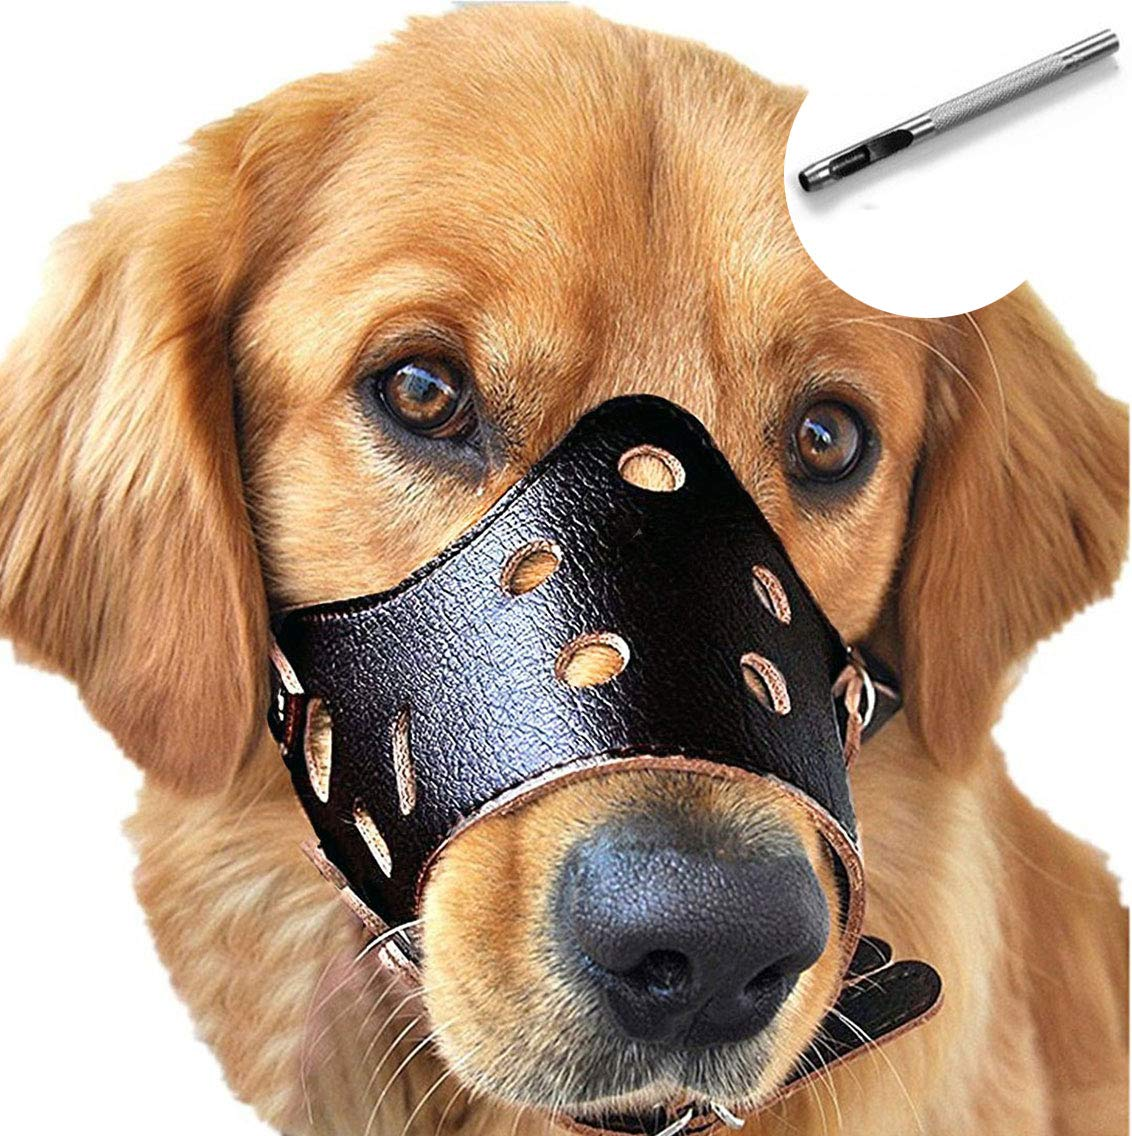 Black S Black S Barkless Dog Muzzle Leather, Comfort Secure Anti-Barking Muzzles for Dog, Breathable and Adjustable, Allows Dringking and Eating, Used with Collars (S, Black)